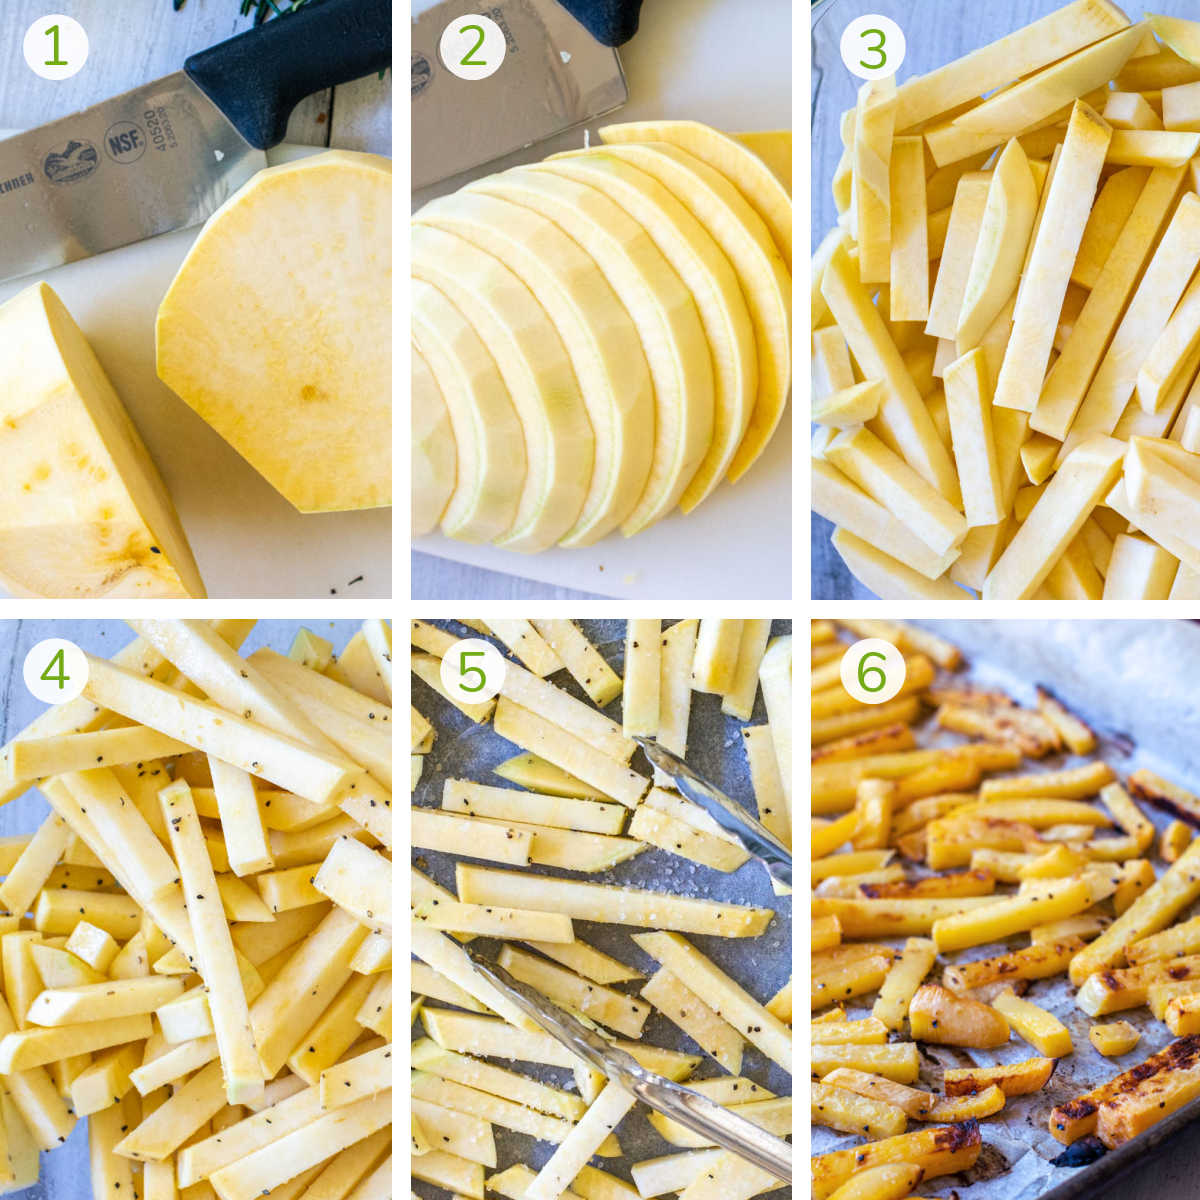 process photos showing slicing the rutabaga, adding salt and pepper and roasting it.